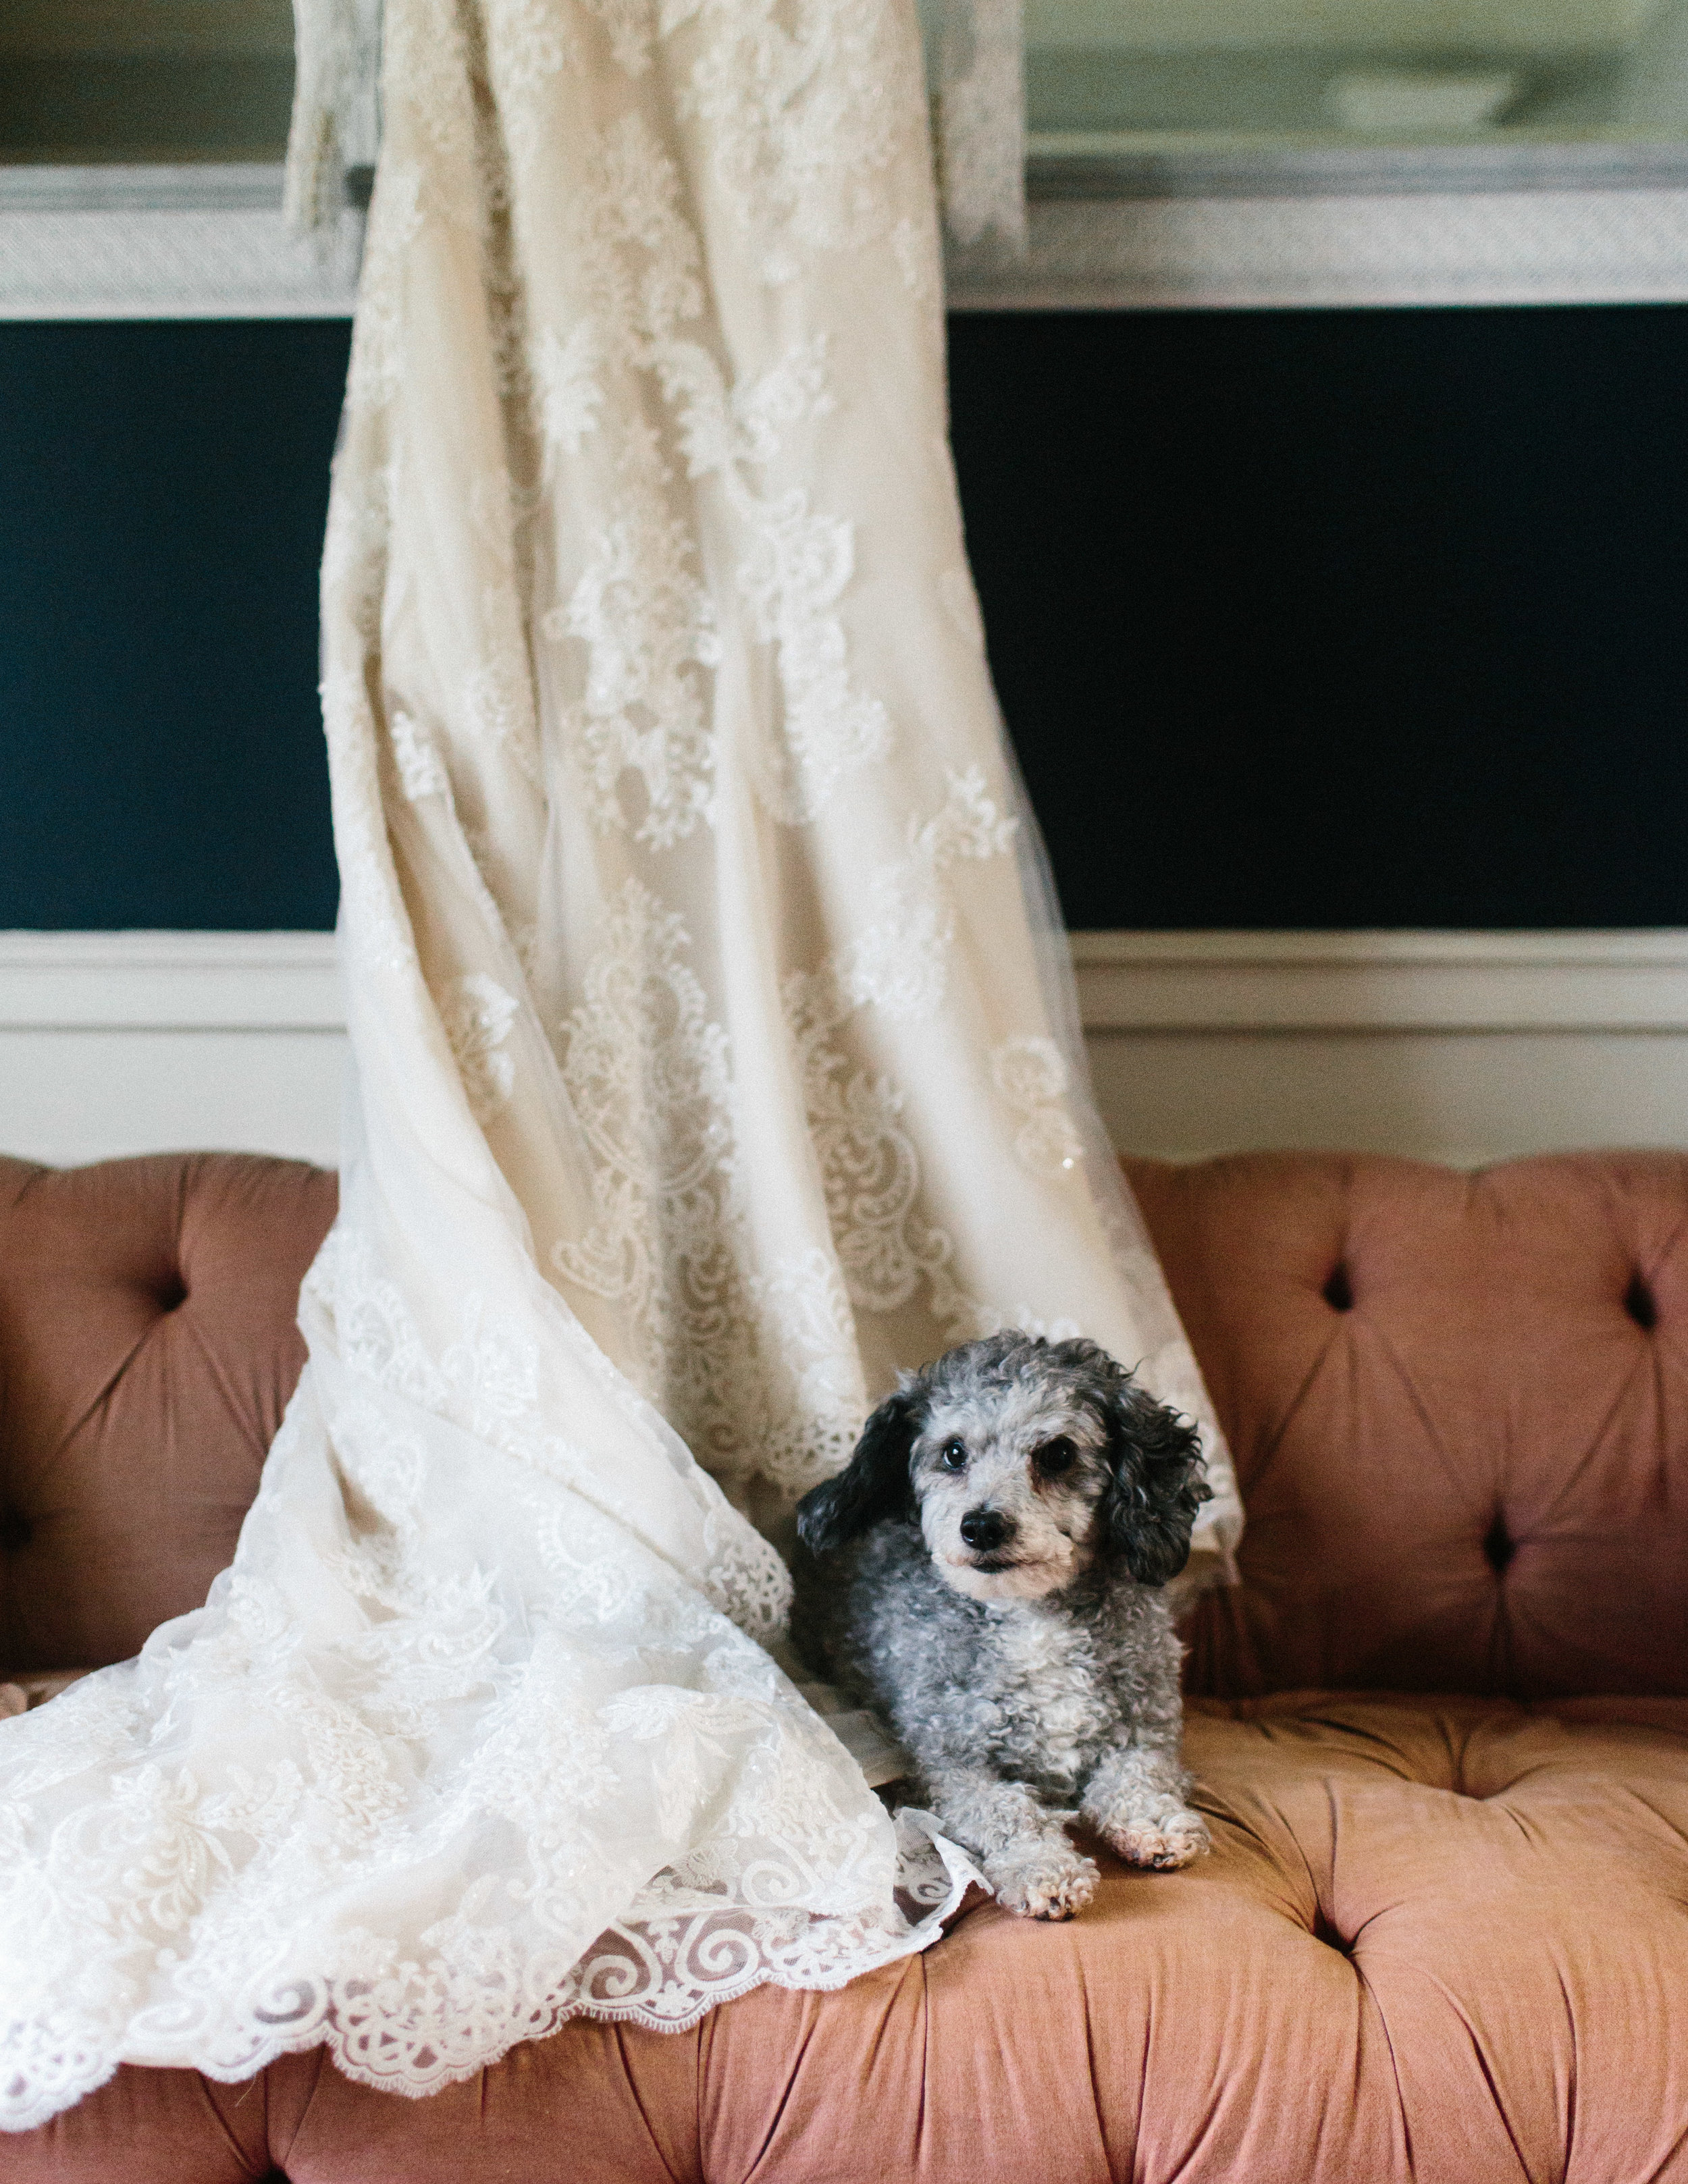 newnan_georgia_elegant_rainy_park_elopement_dogs_pups_tiny_wedding_backless_dress_blue_suit_georgia_atlanta_photographer_1013.jpg